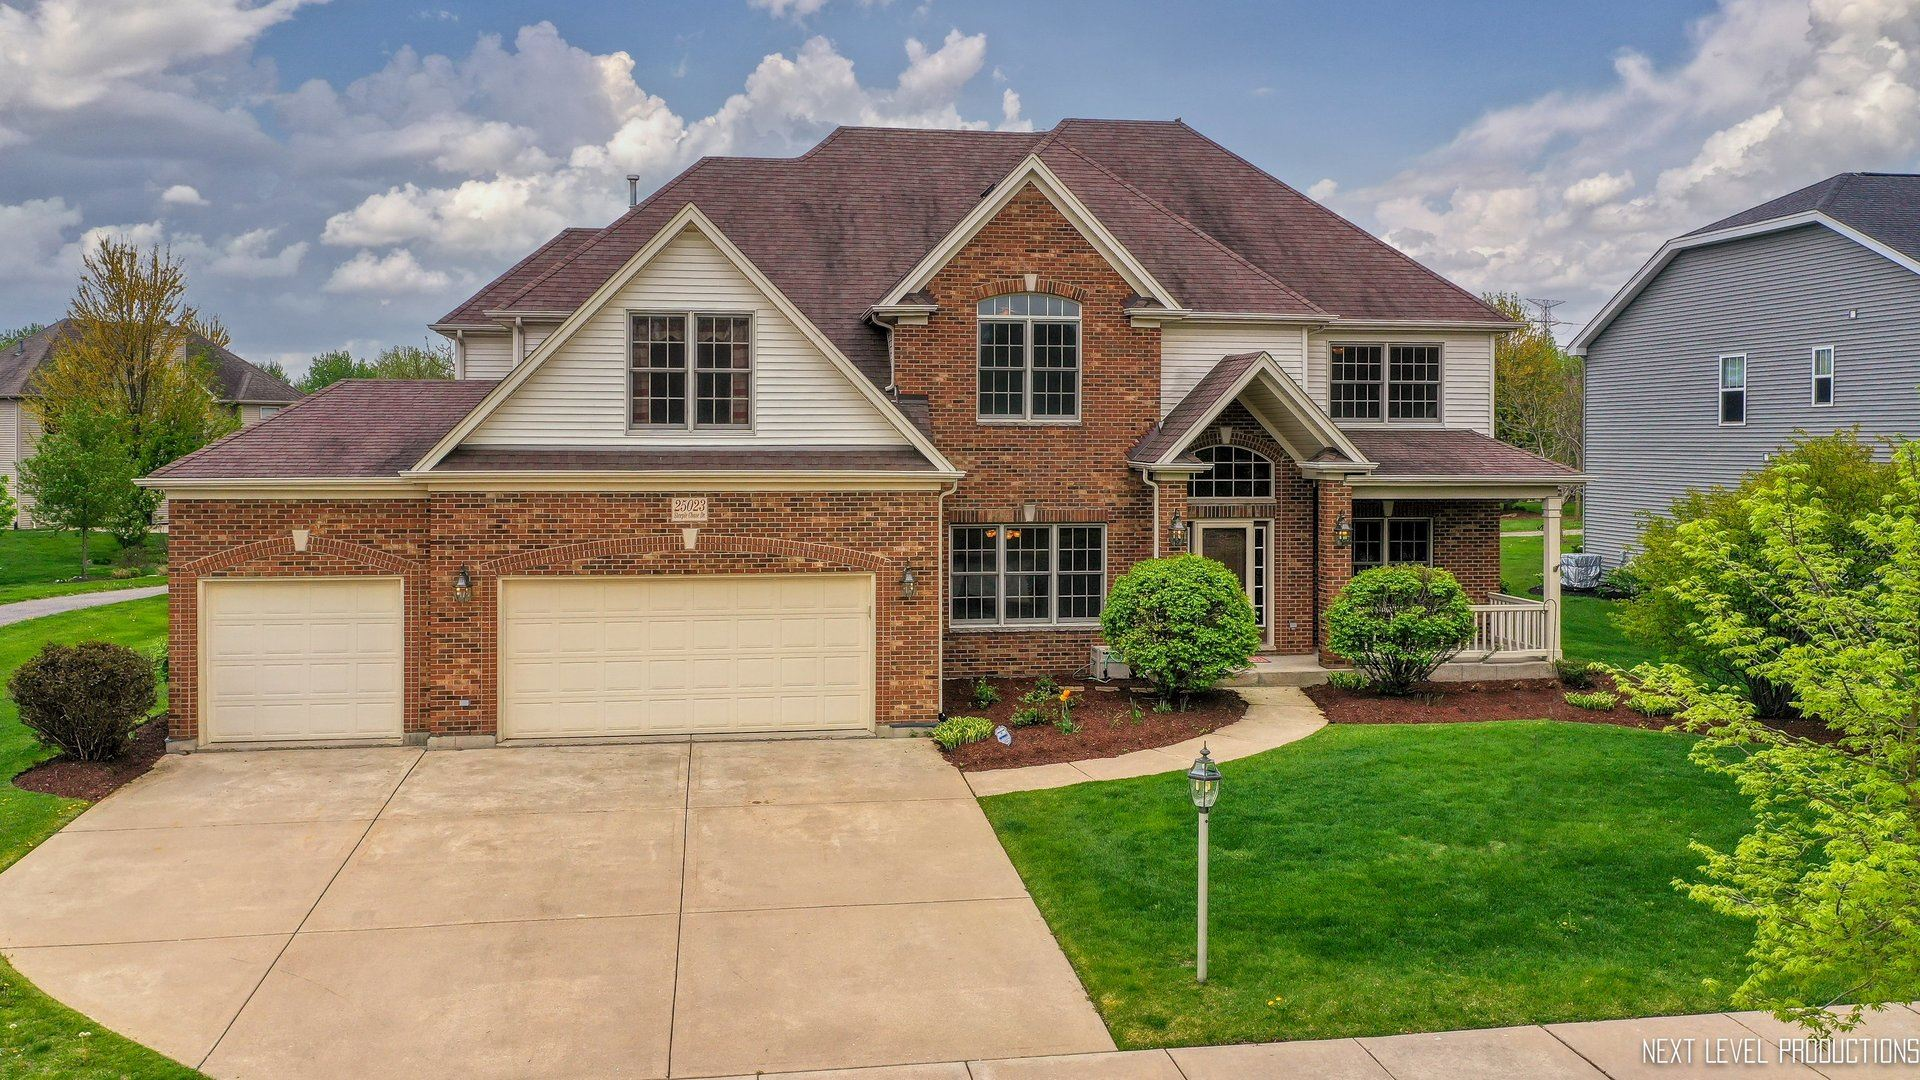 Photo of 25023 STEEPLE CHASE Drive, Plainfield, IL 60585 (MLS # 11068950)